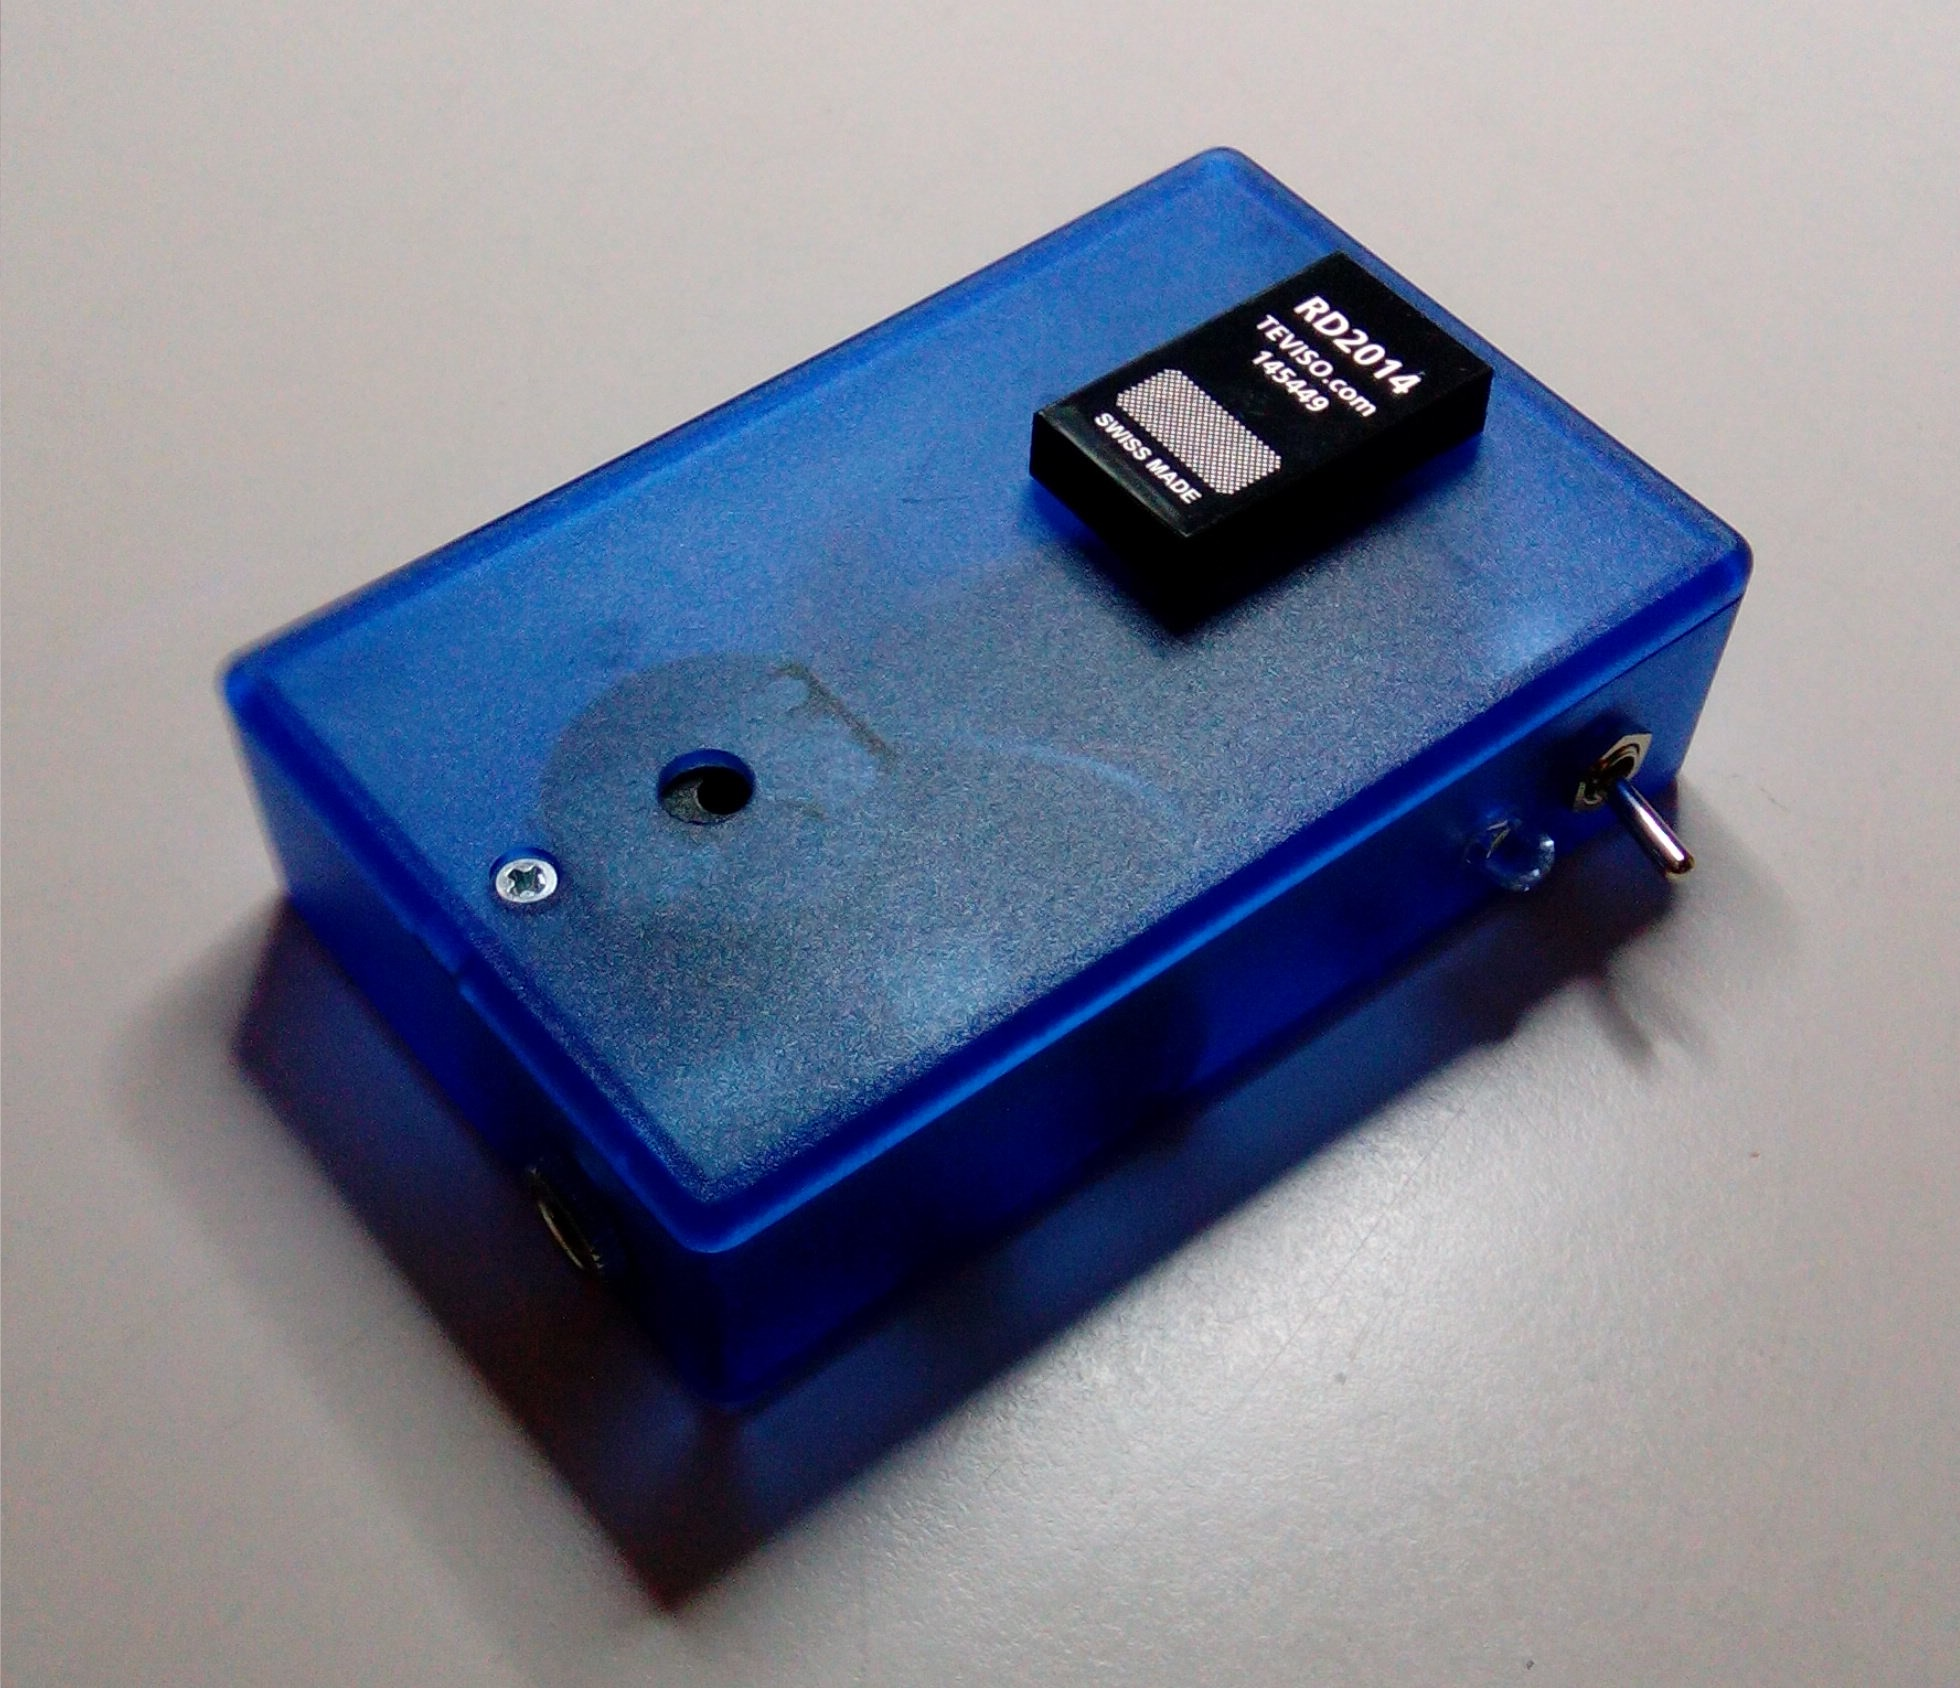 Portable Radiation Detector Physicsopenlab 4 Pin Diode Wiring Diagram The Solid State Is Based On A P Type Intrinsic N Which With Wide Region Of Semiconductor Material